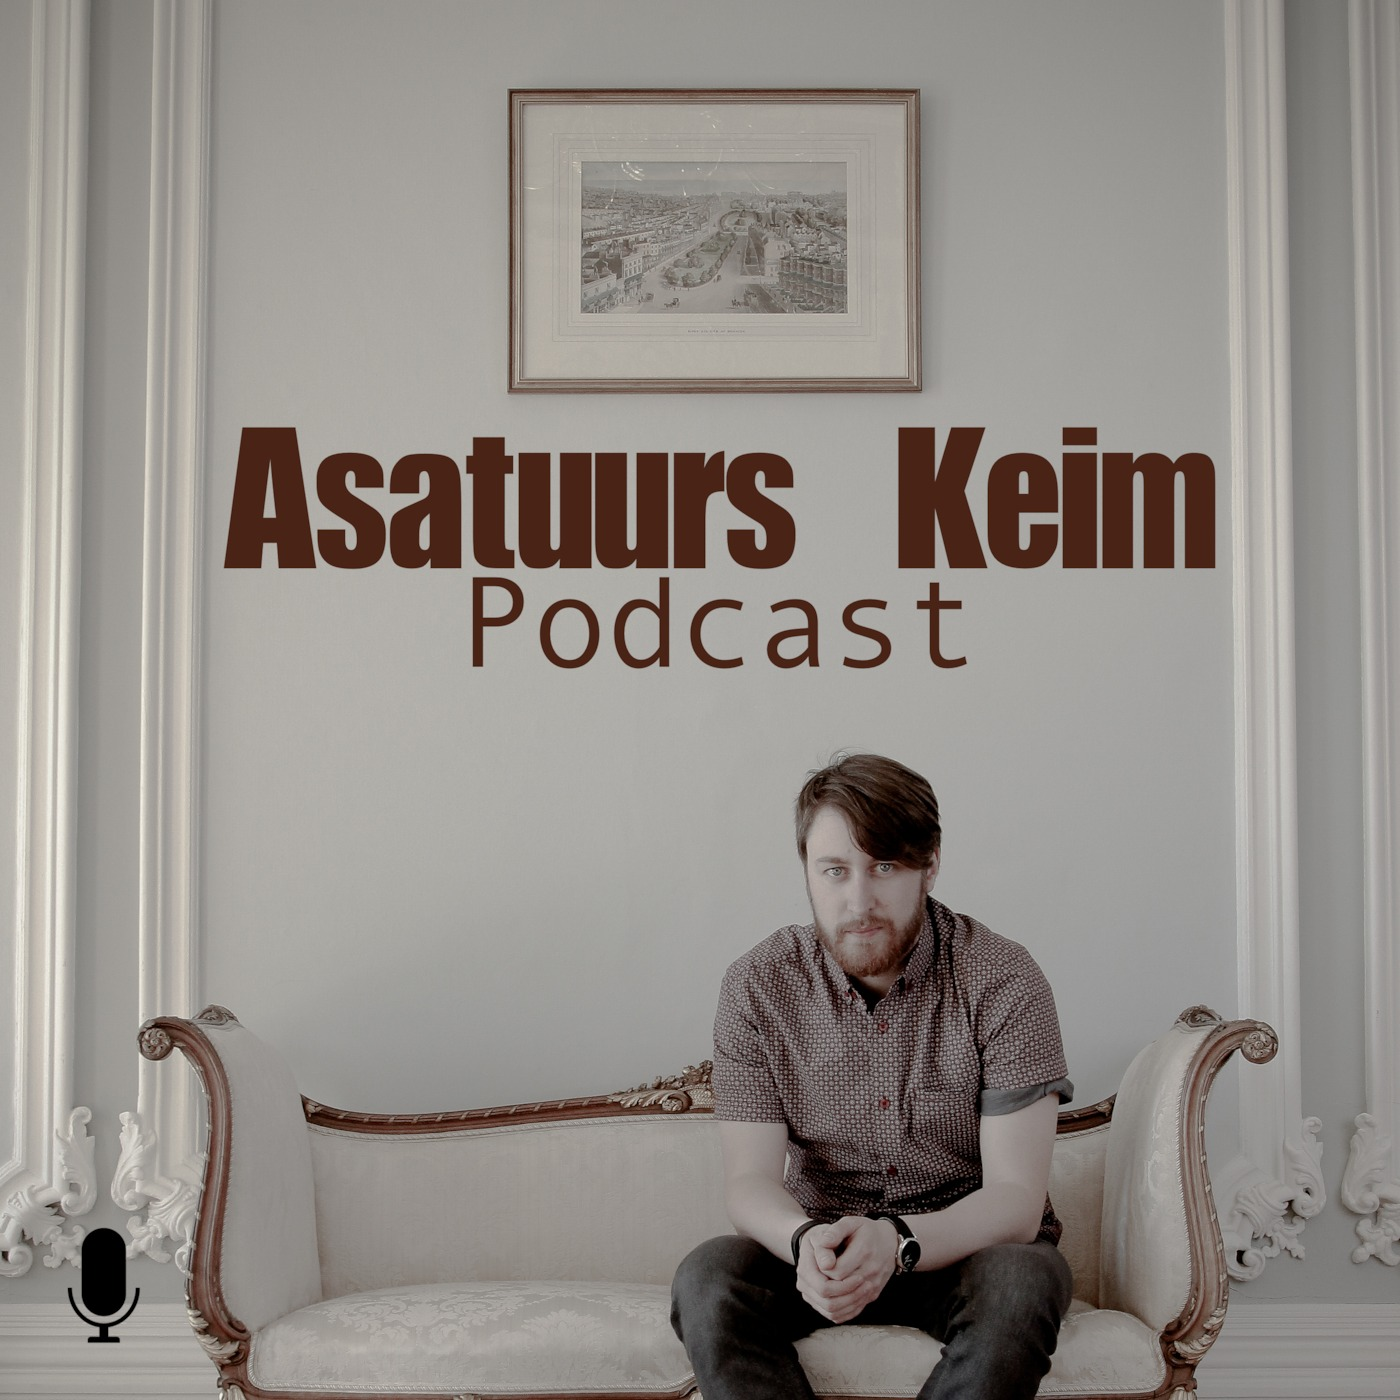 Asatuurs Keim Podcast